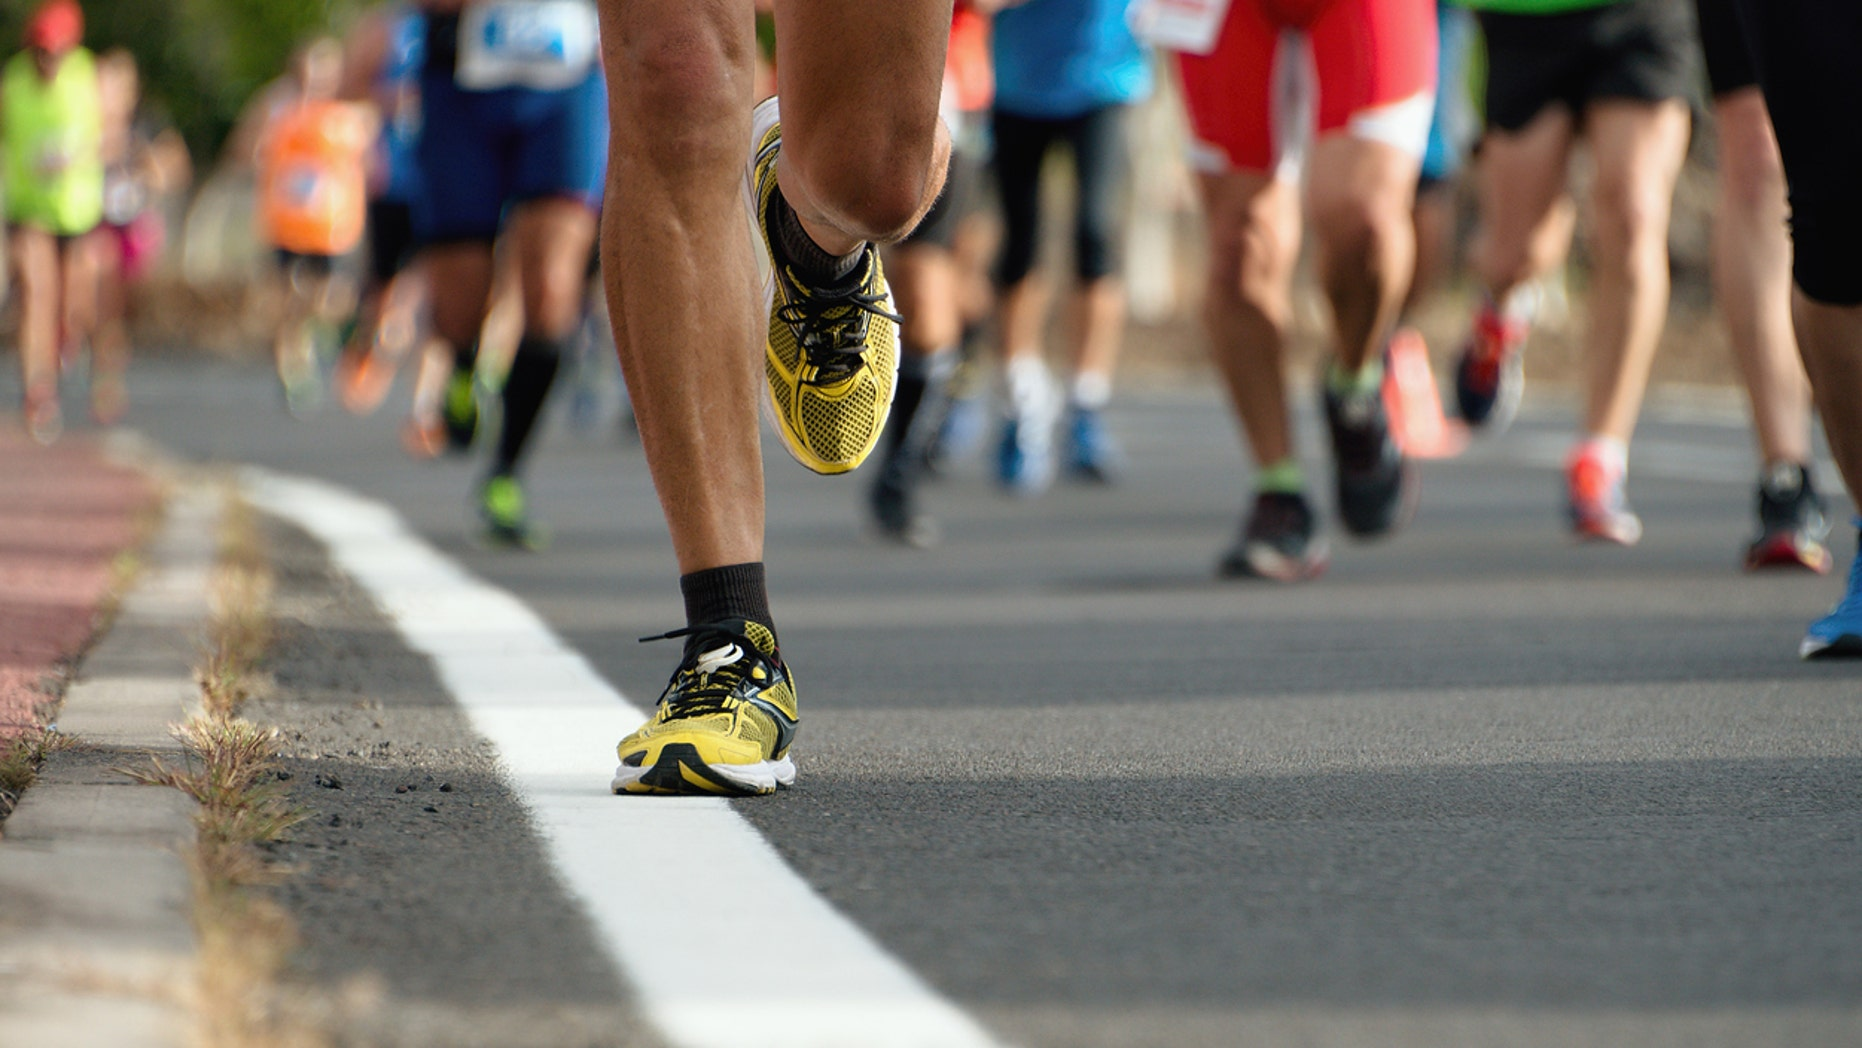 A teenager helped a marathon runner cross the finish line after her legs gave out.